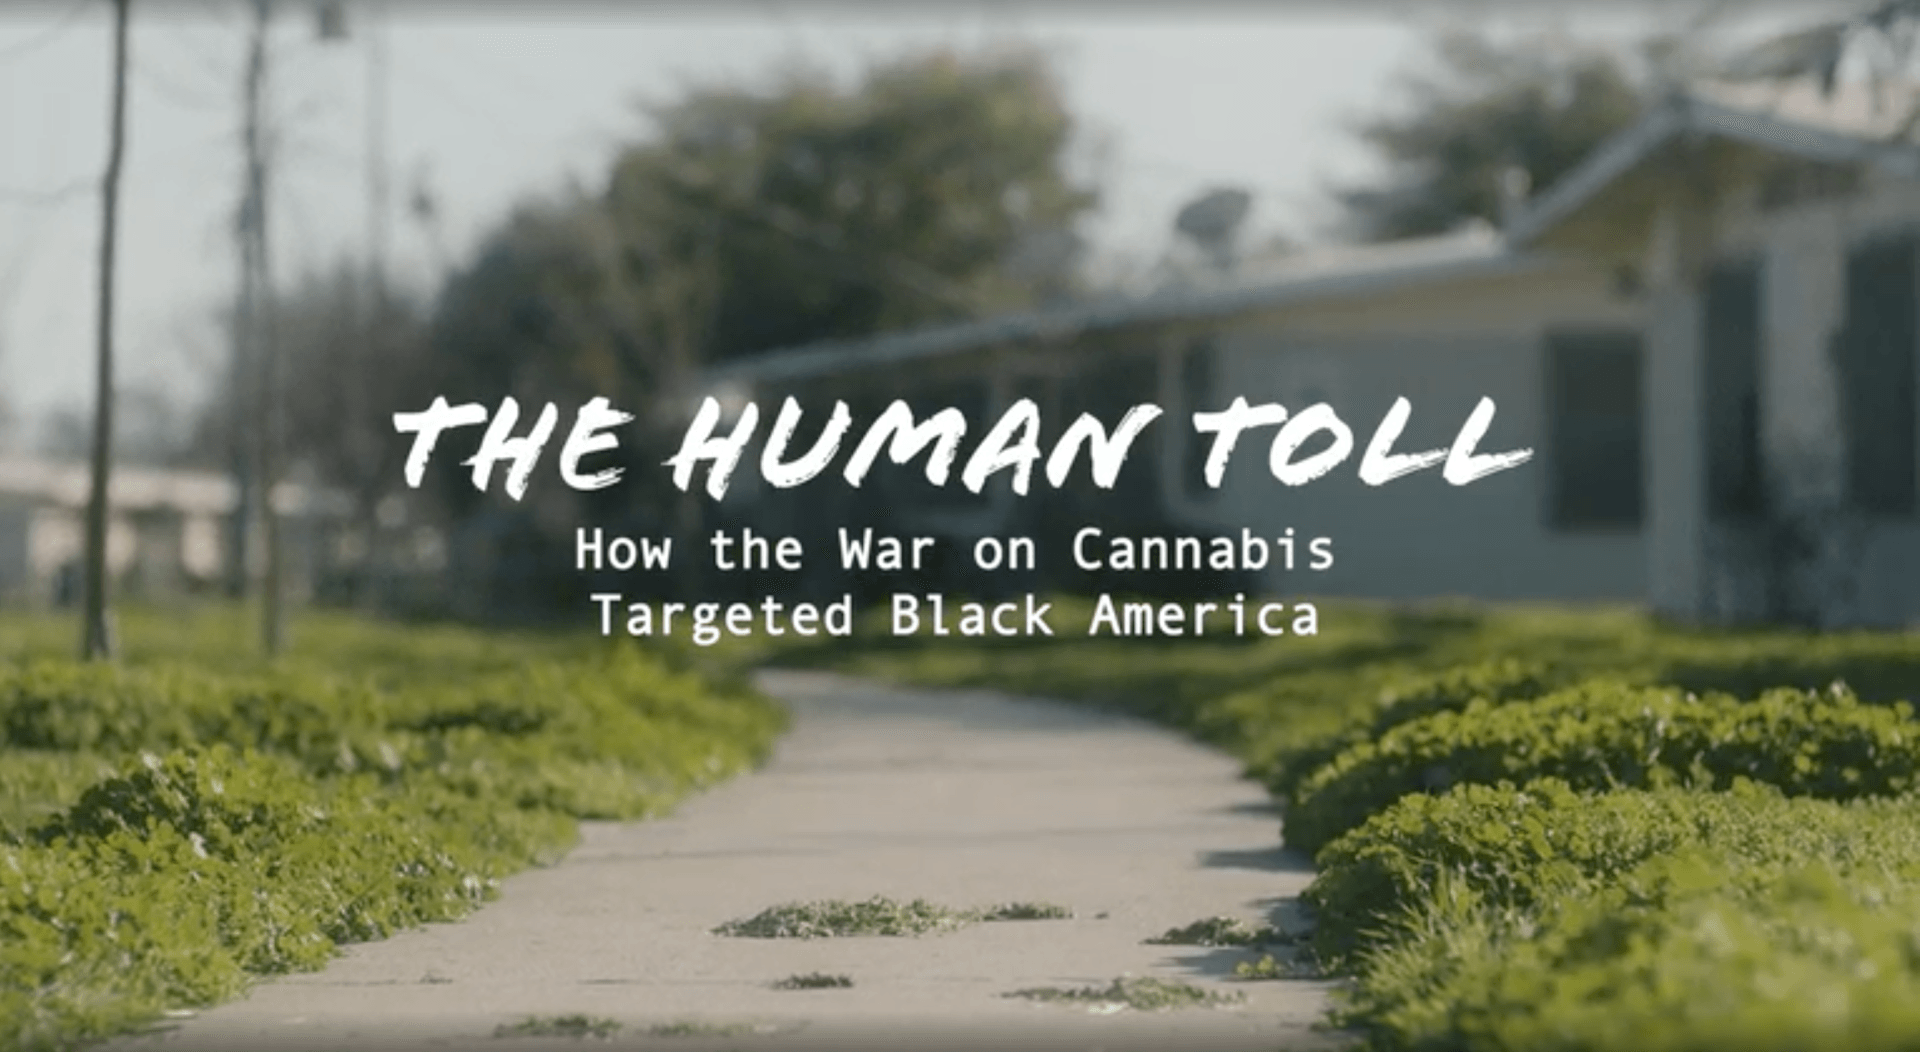 Watch The Human Toll: How the War on Cannabis Targeted Black America